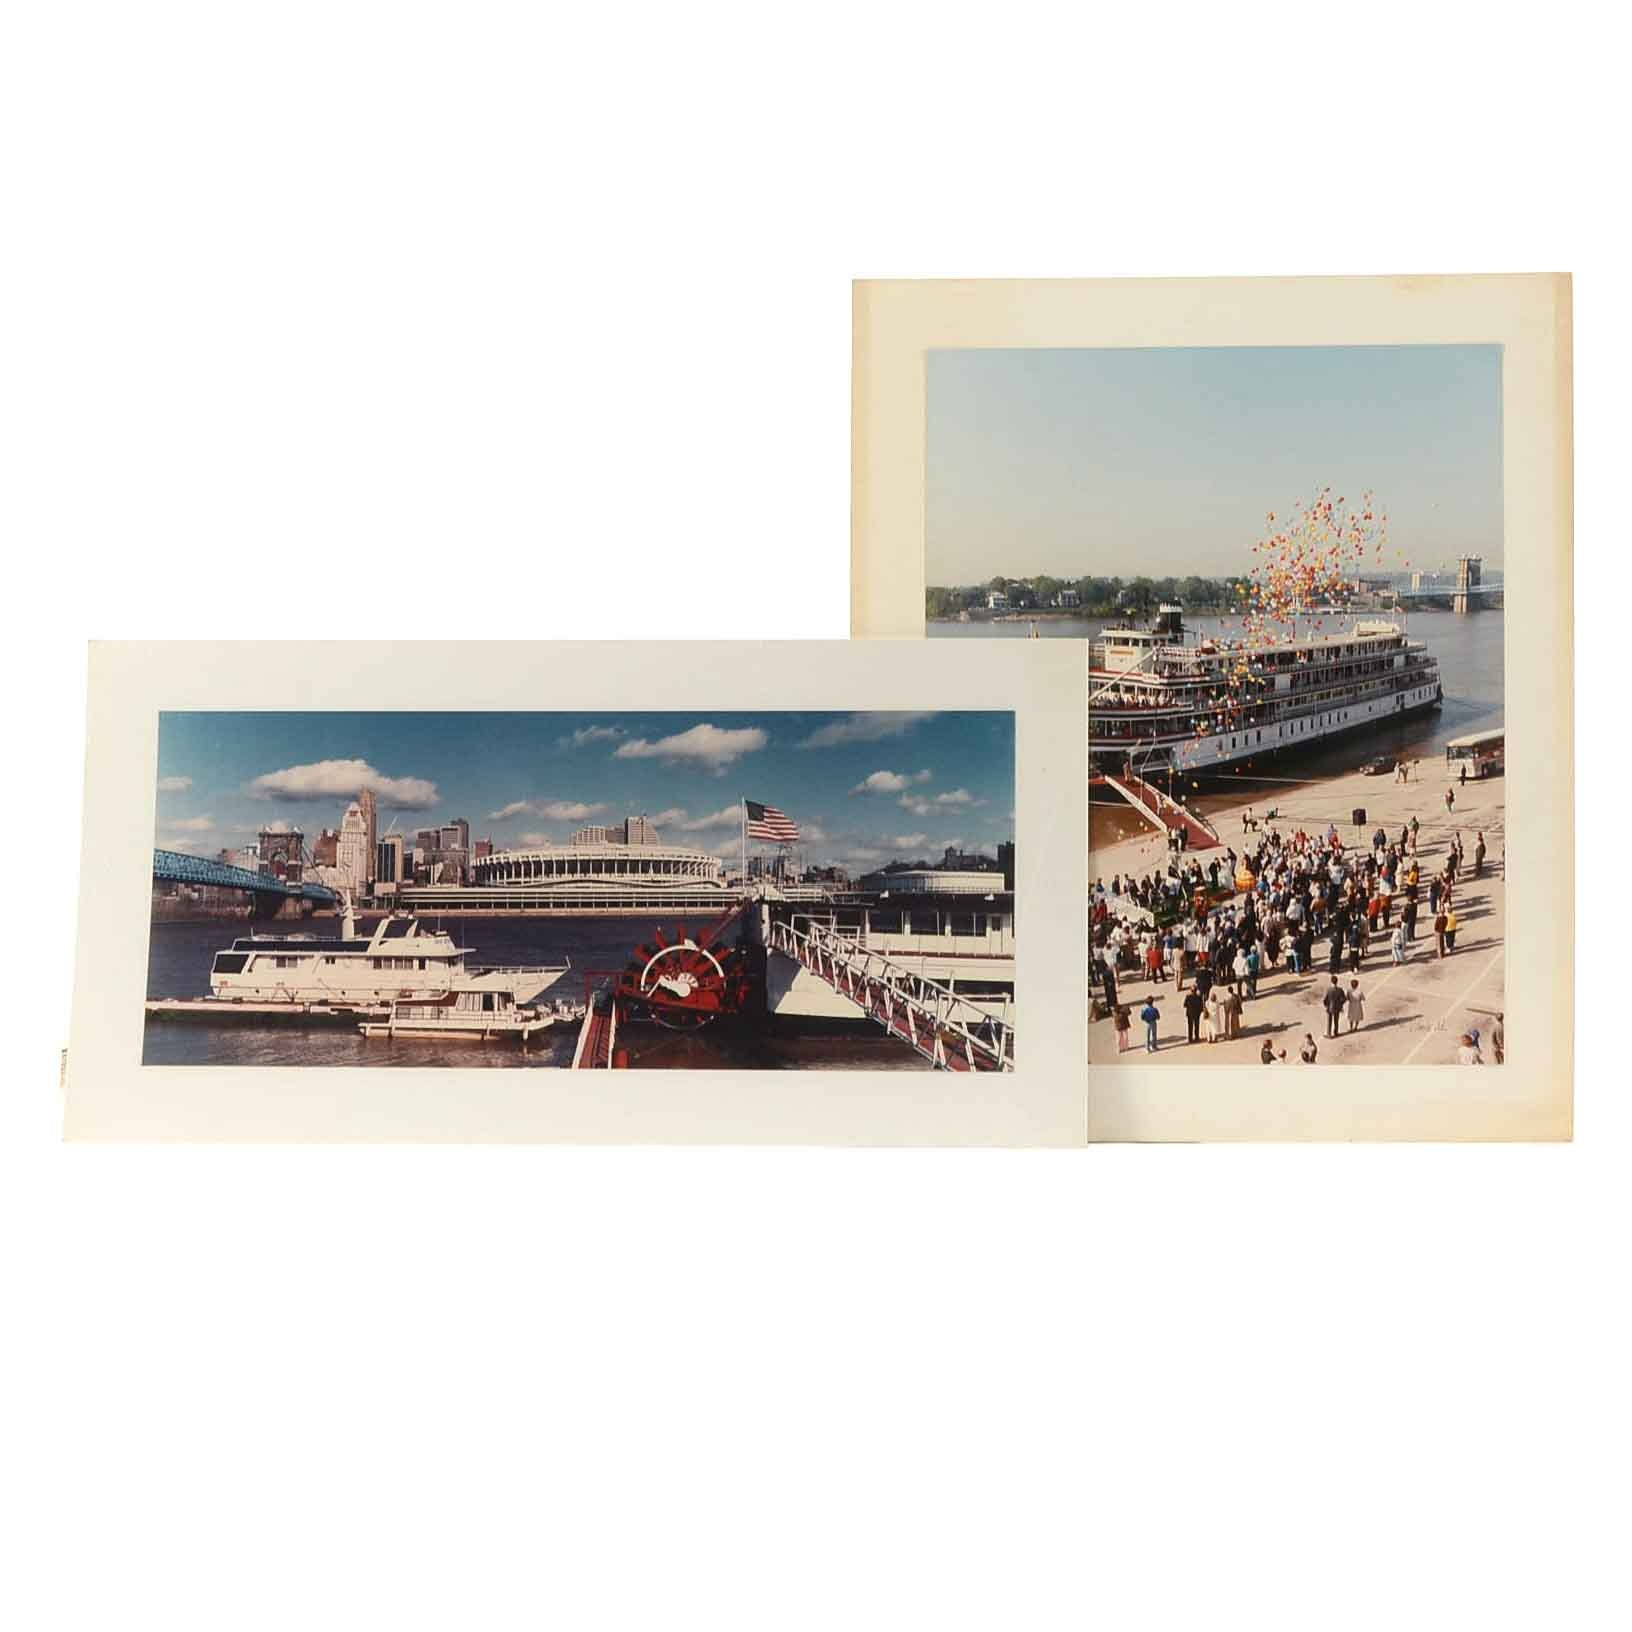 Vincent Re Pair of Photographs of Riverboats